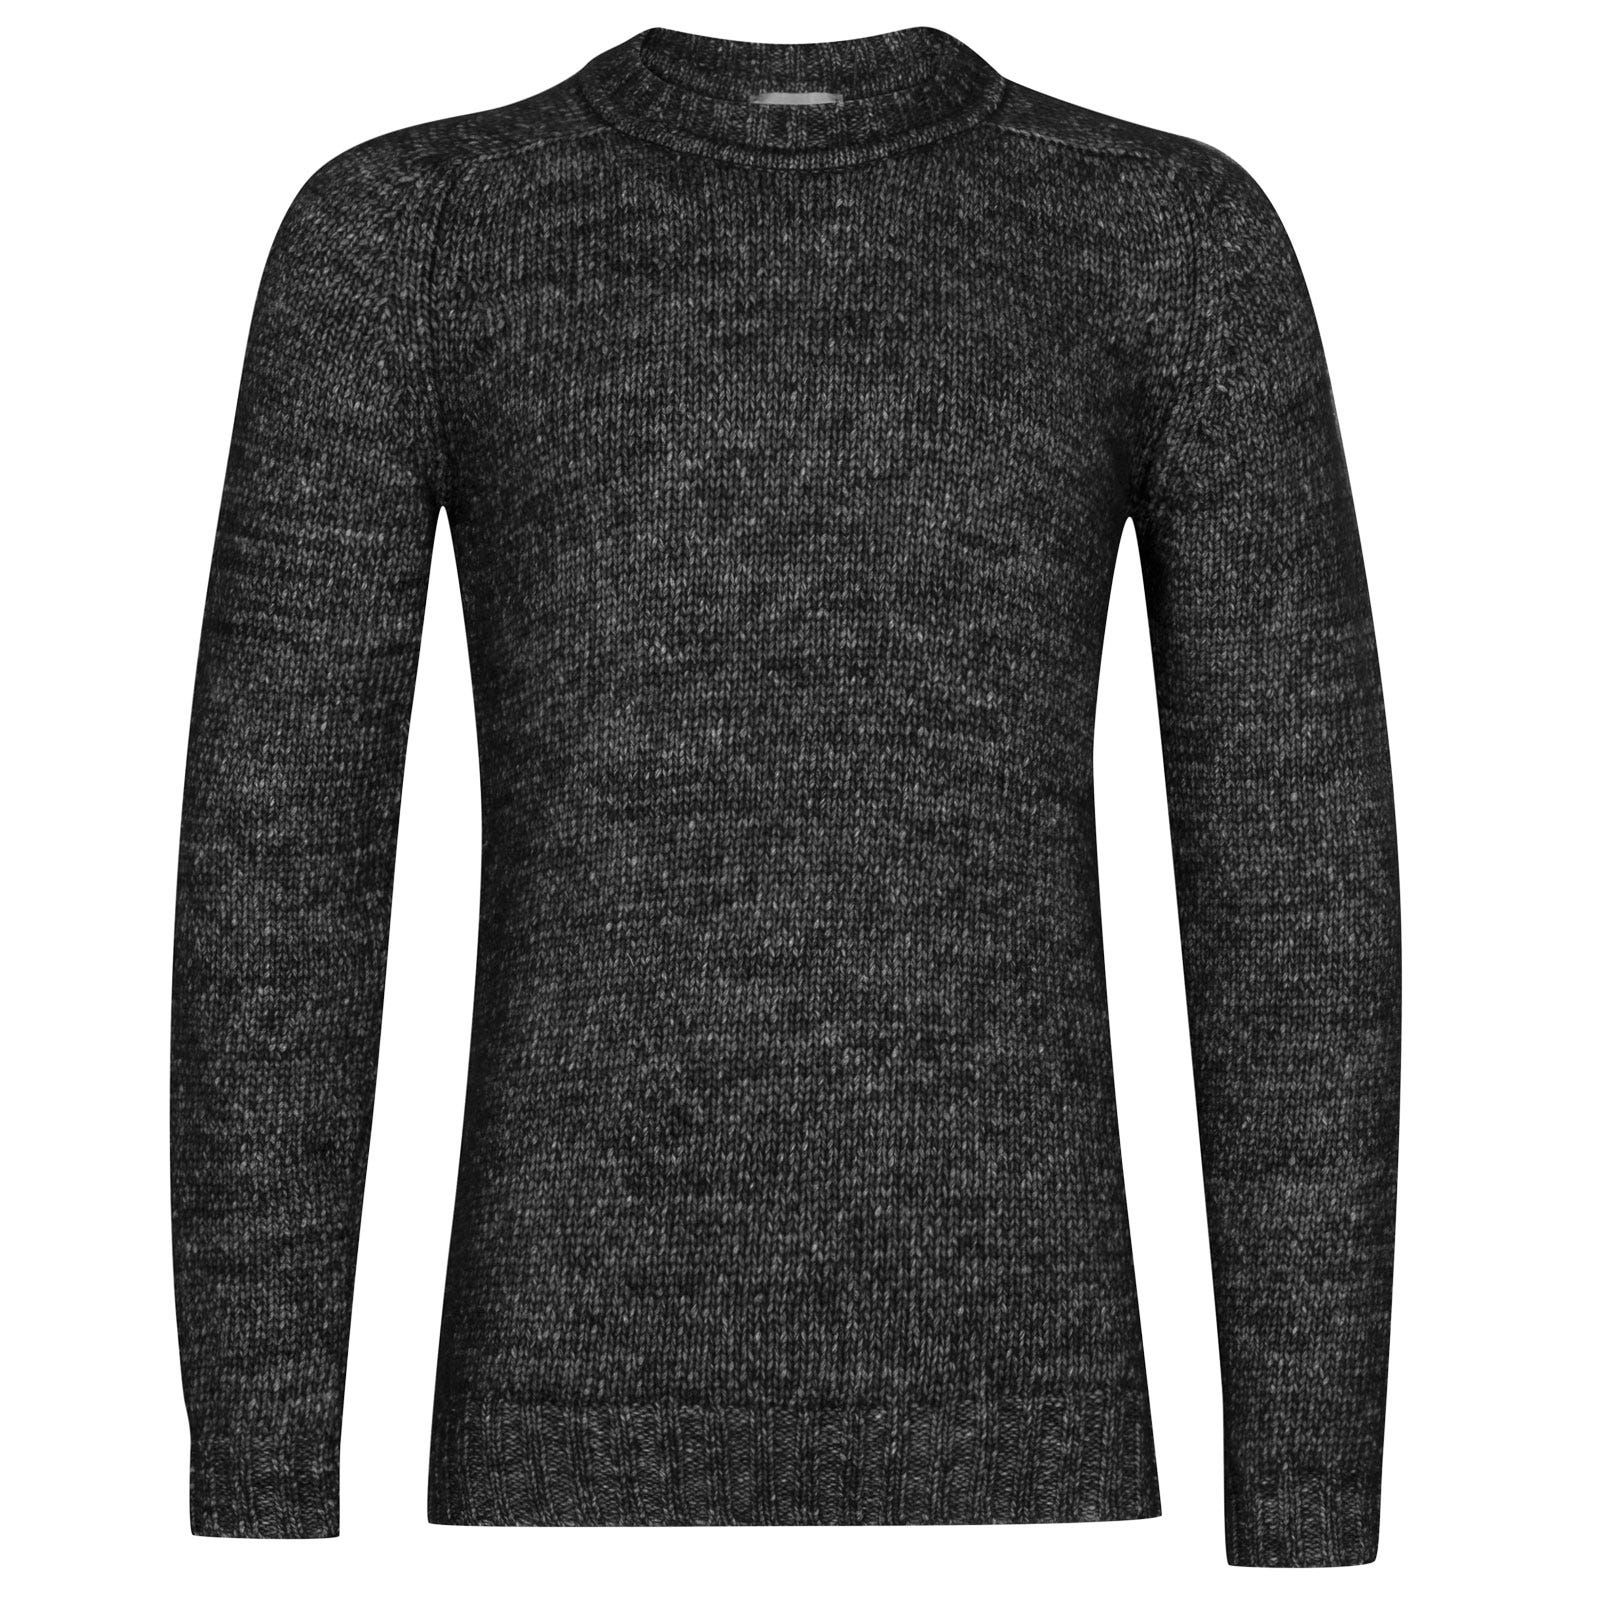 John Smedley storr Alpaca, Wool & Cotton Pullover in Black-L